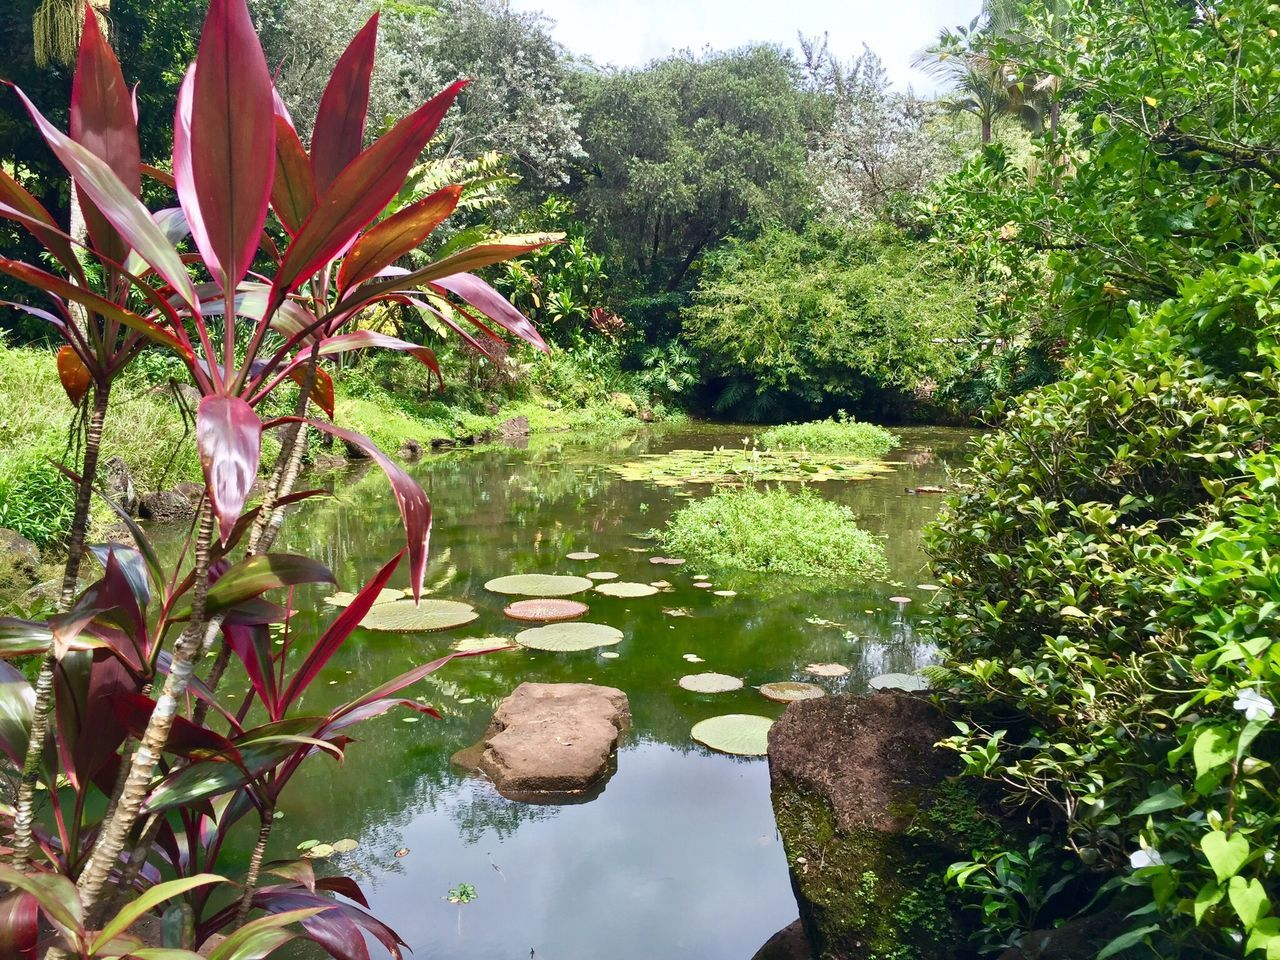 Oahu, Hawaii Nature Water Growth Plant Beauty In Nature Tree Outdoors No People Day Green Color Tranquility Tranquil Scene Scenics Sky